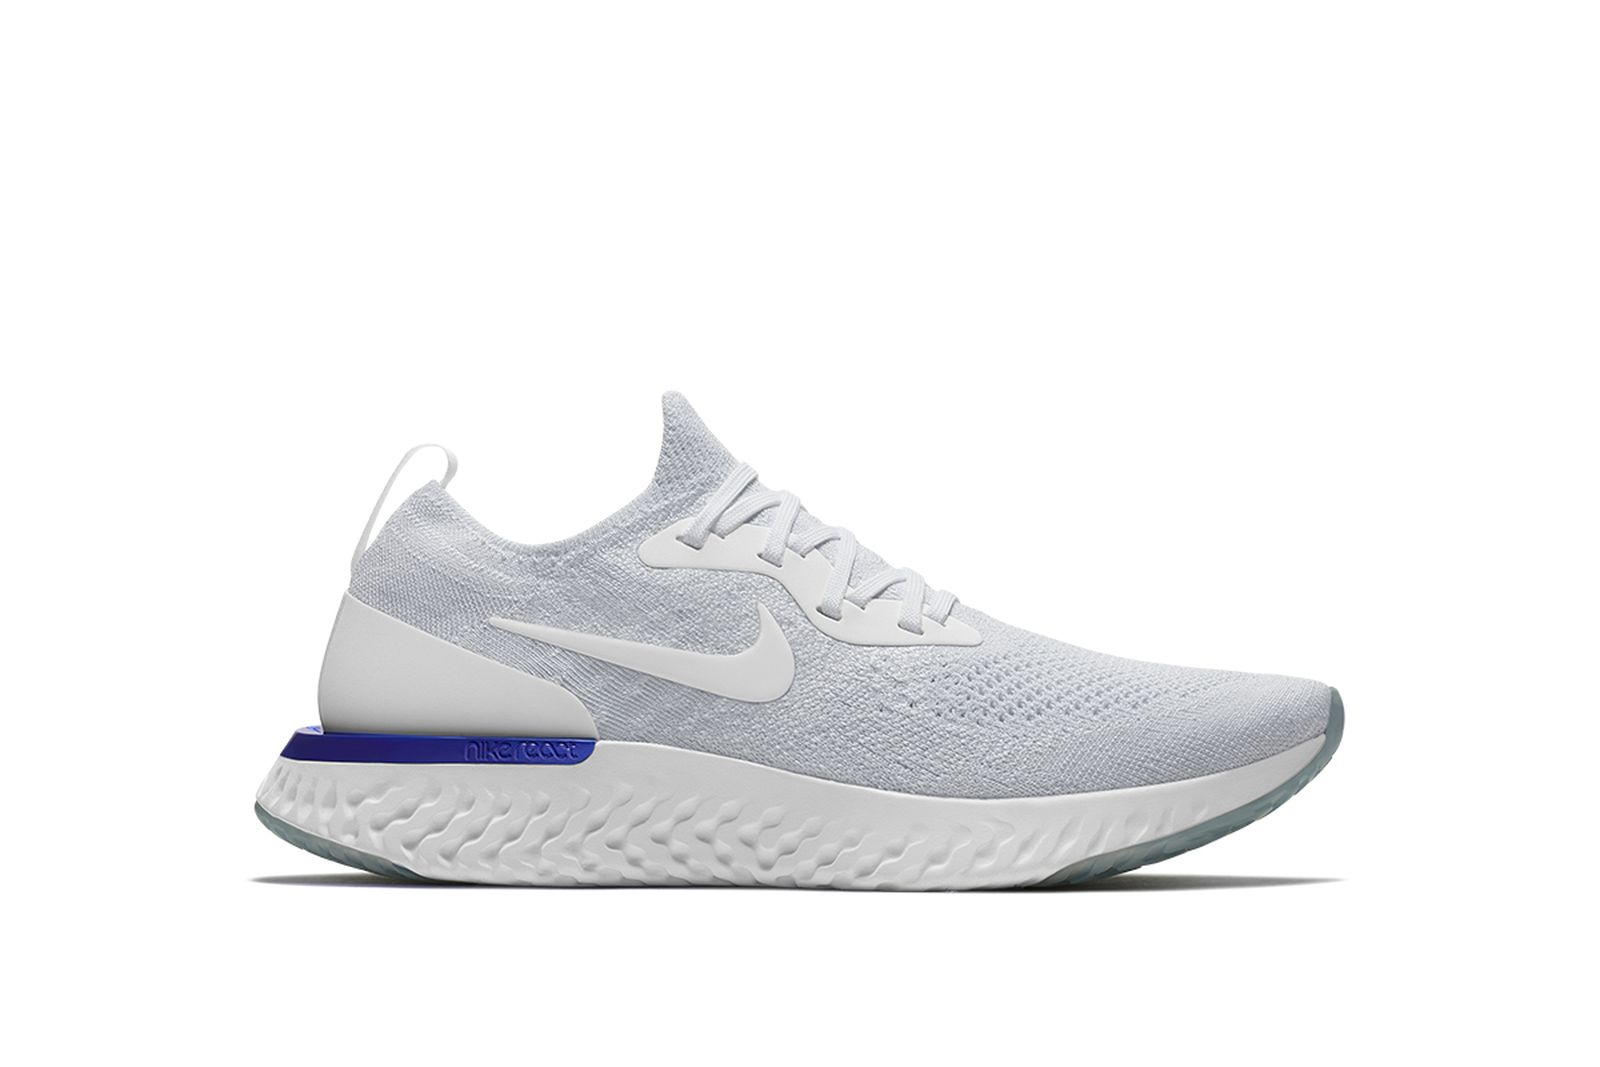 highsnobiety-exclusive-nike-epic-react-flyknit-fusion-05